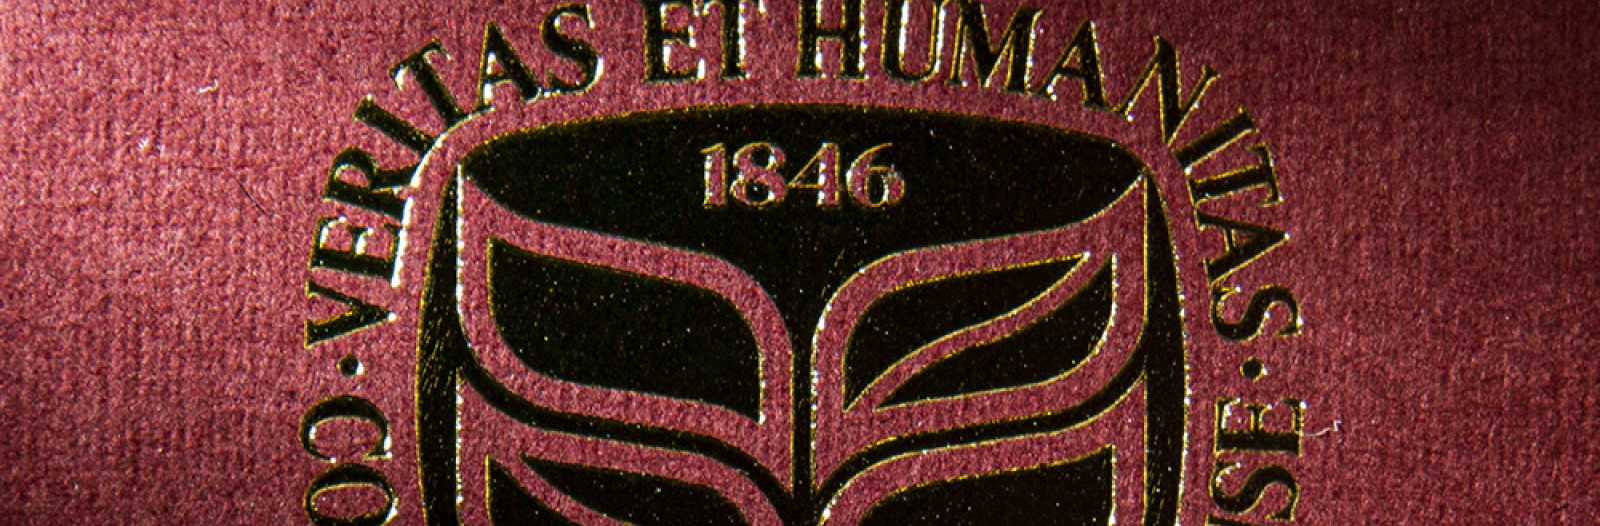 Grinnell College seal embossed in gold ink